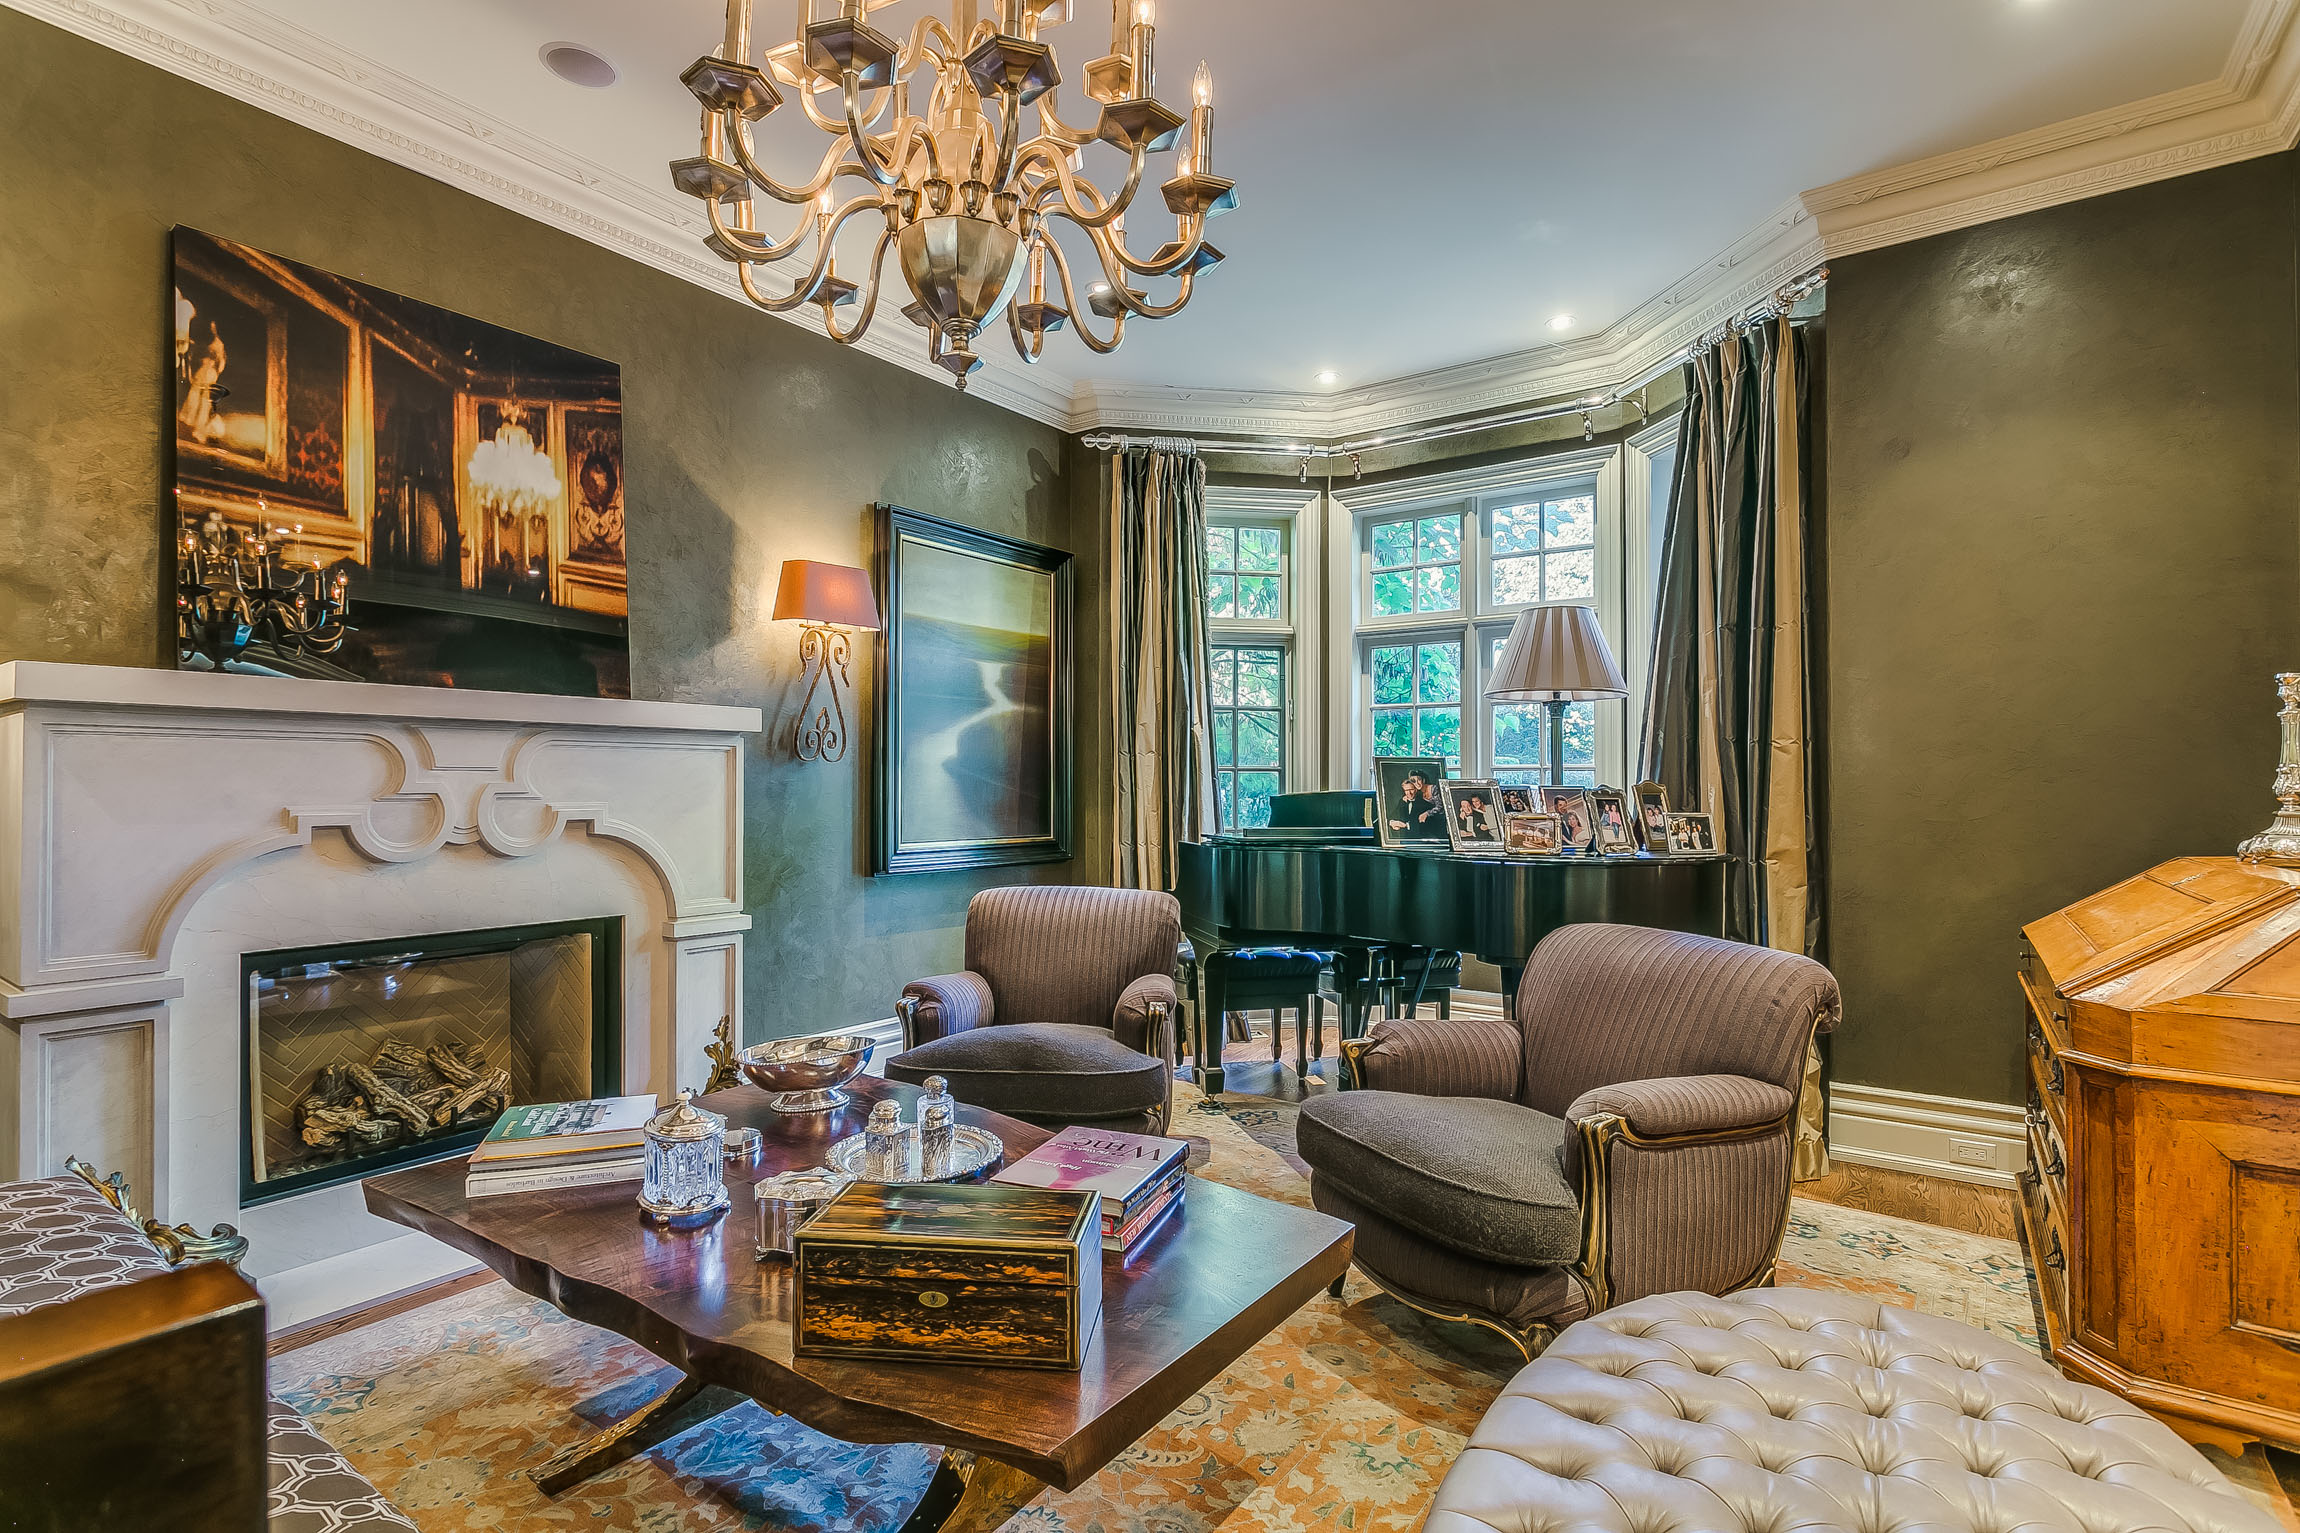 living space - Beginning With The Mahogany Rich Office; Finished With a Warm Fireplace, To The Spectacular Details Lining Both The Dining and Living Rooms, Every Space Has a Purpose. A Family Inspired Home, This House Is Also Ideal For Entertaining Large Events & Intimate Dinner Parties.